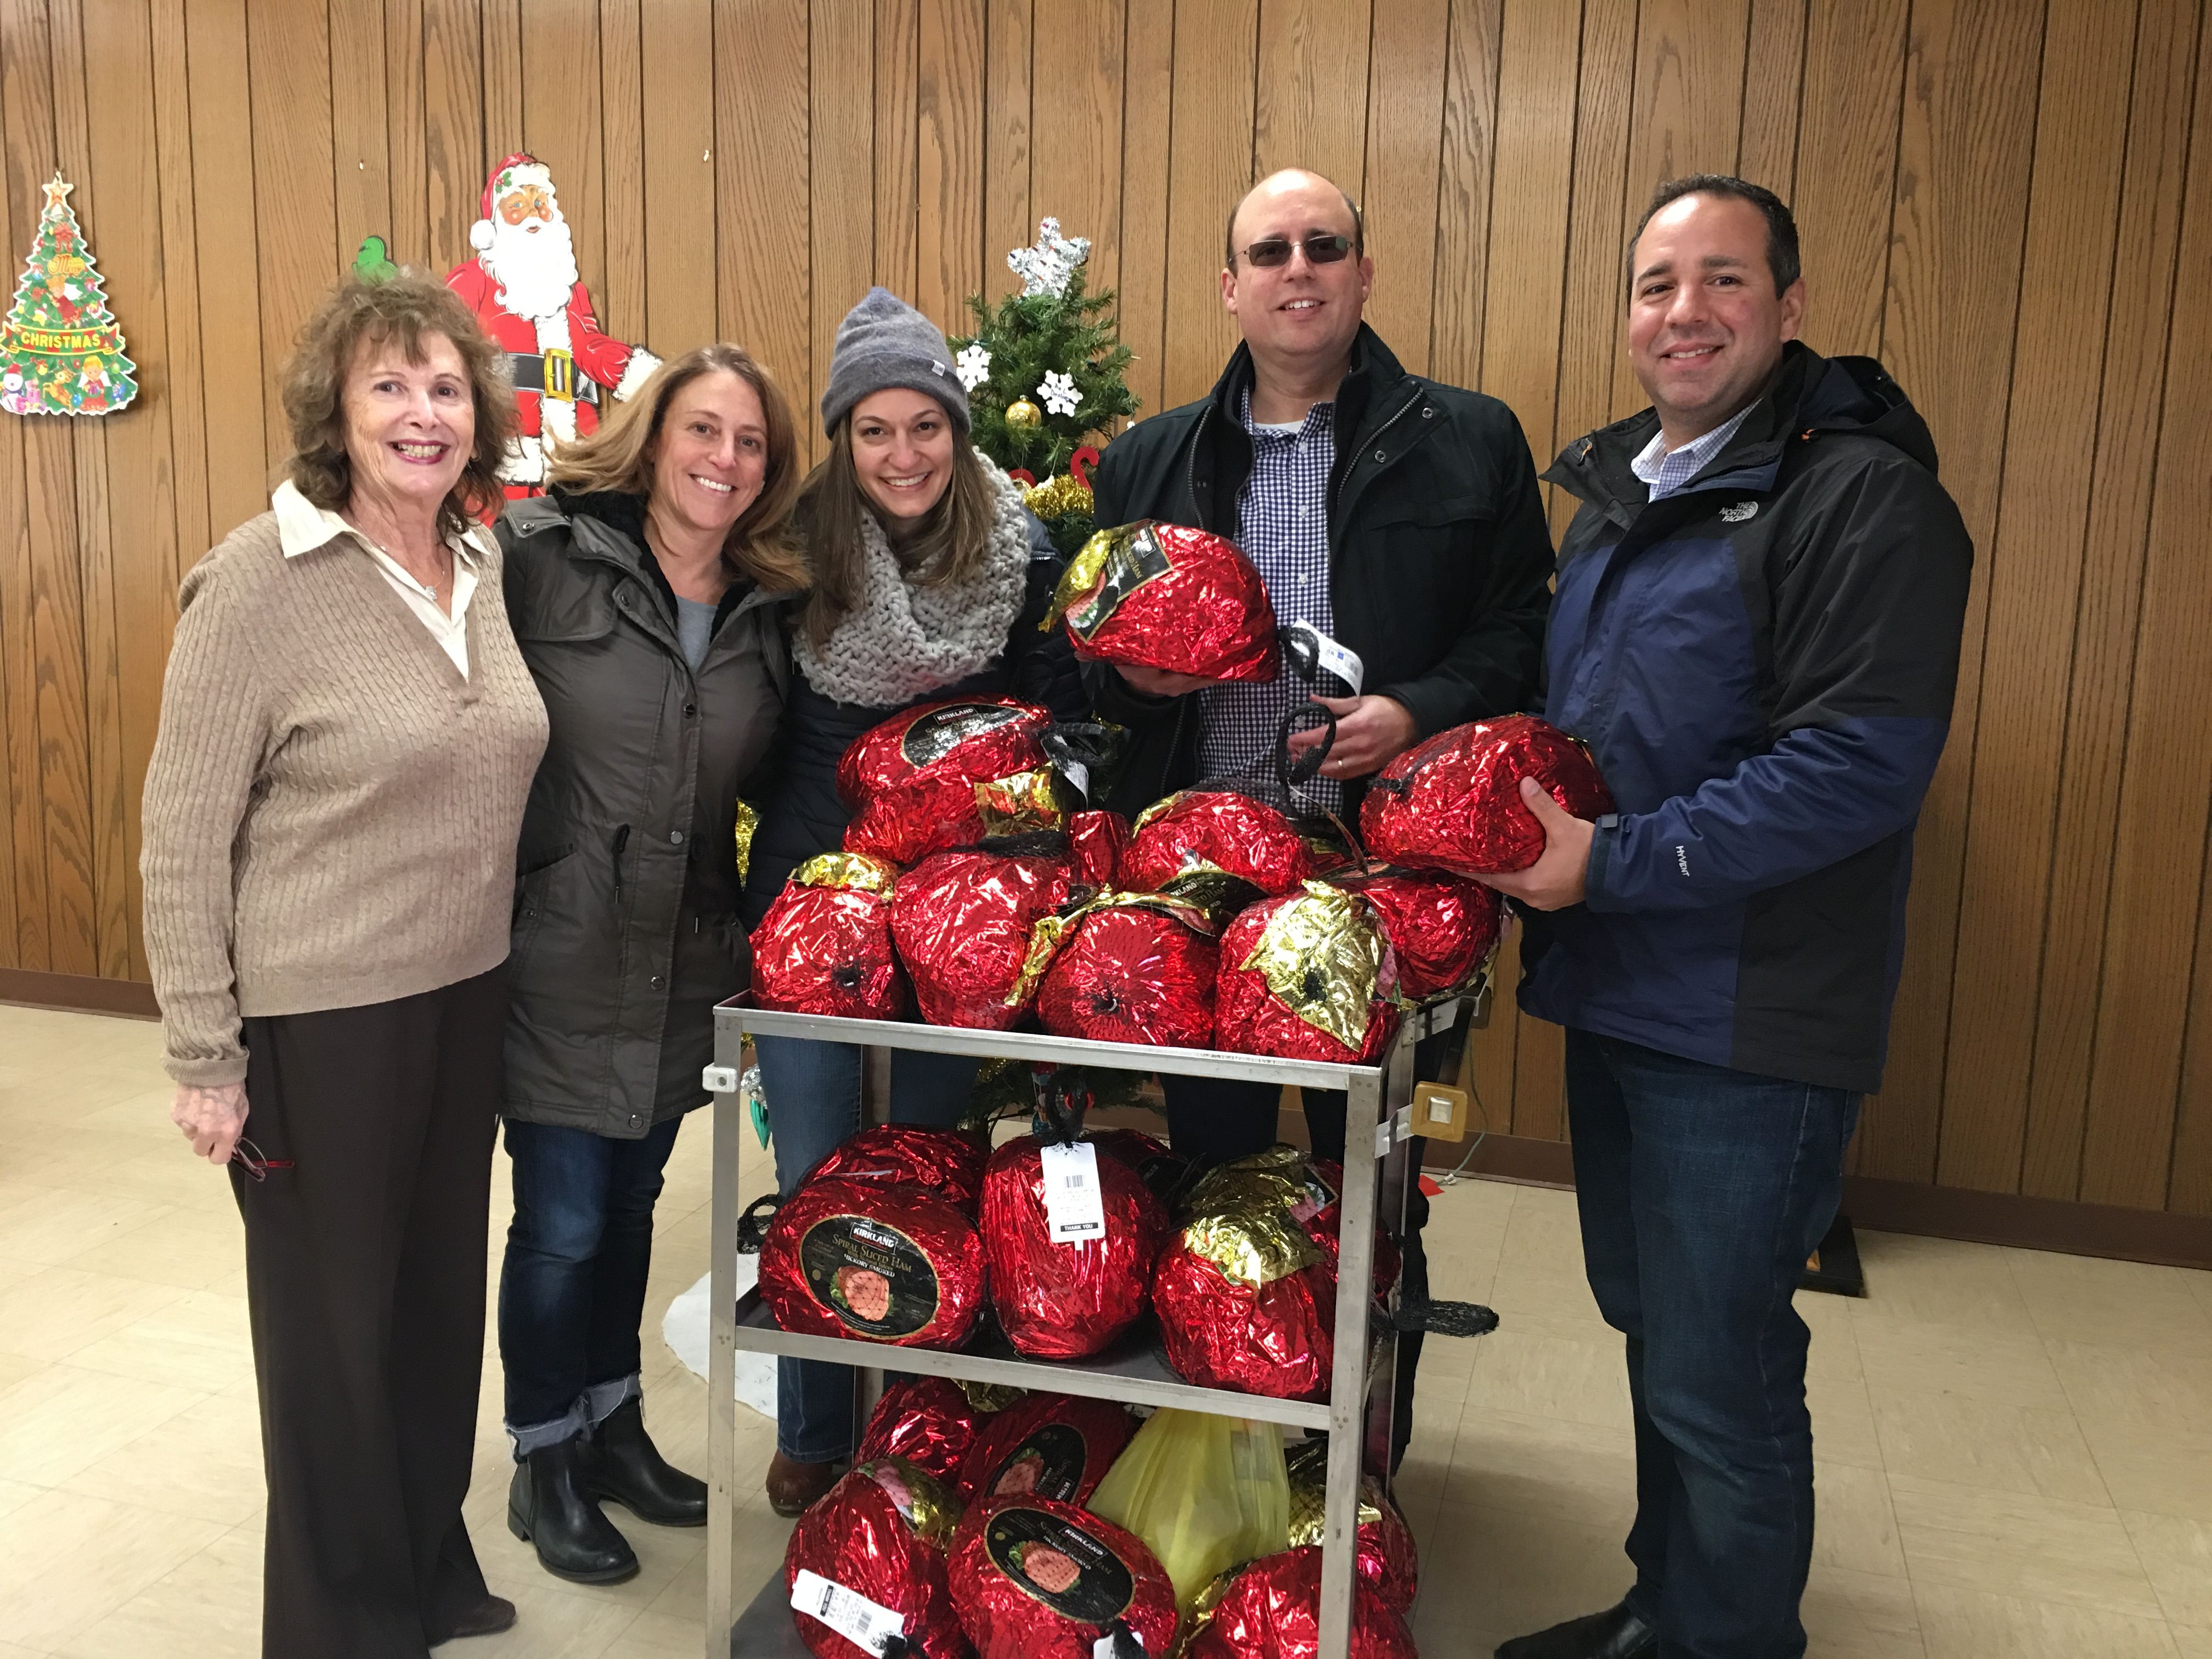 Christmas 2016 Carrington Farms donated 25 hams to the Closter Food Pantry